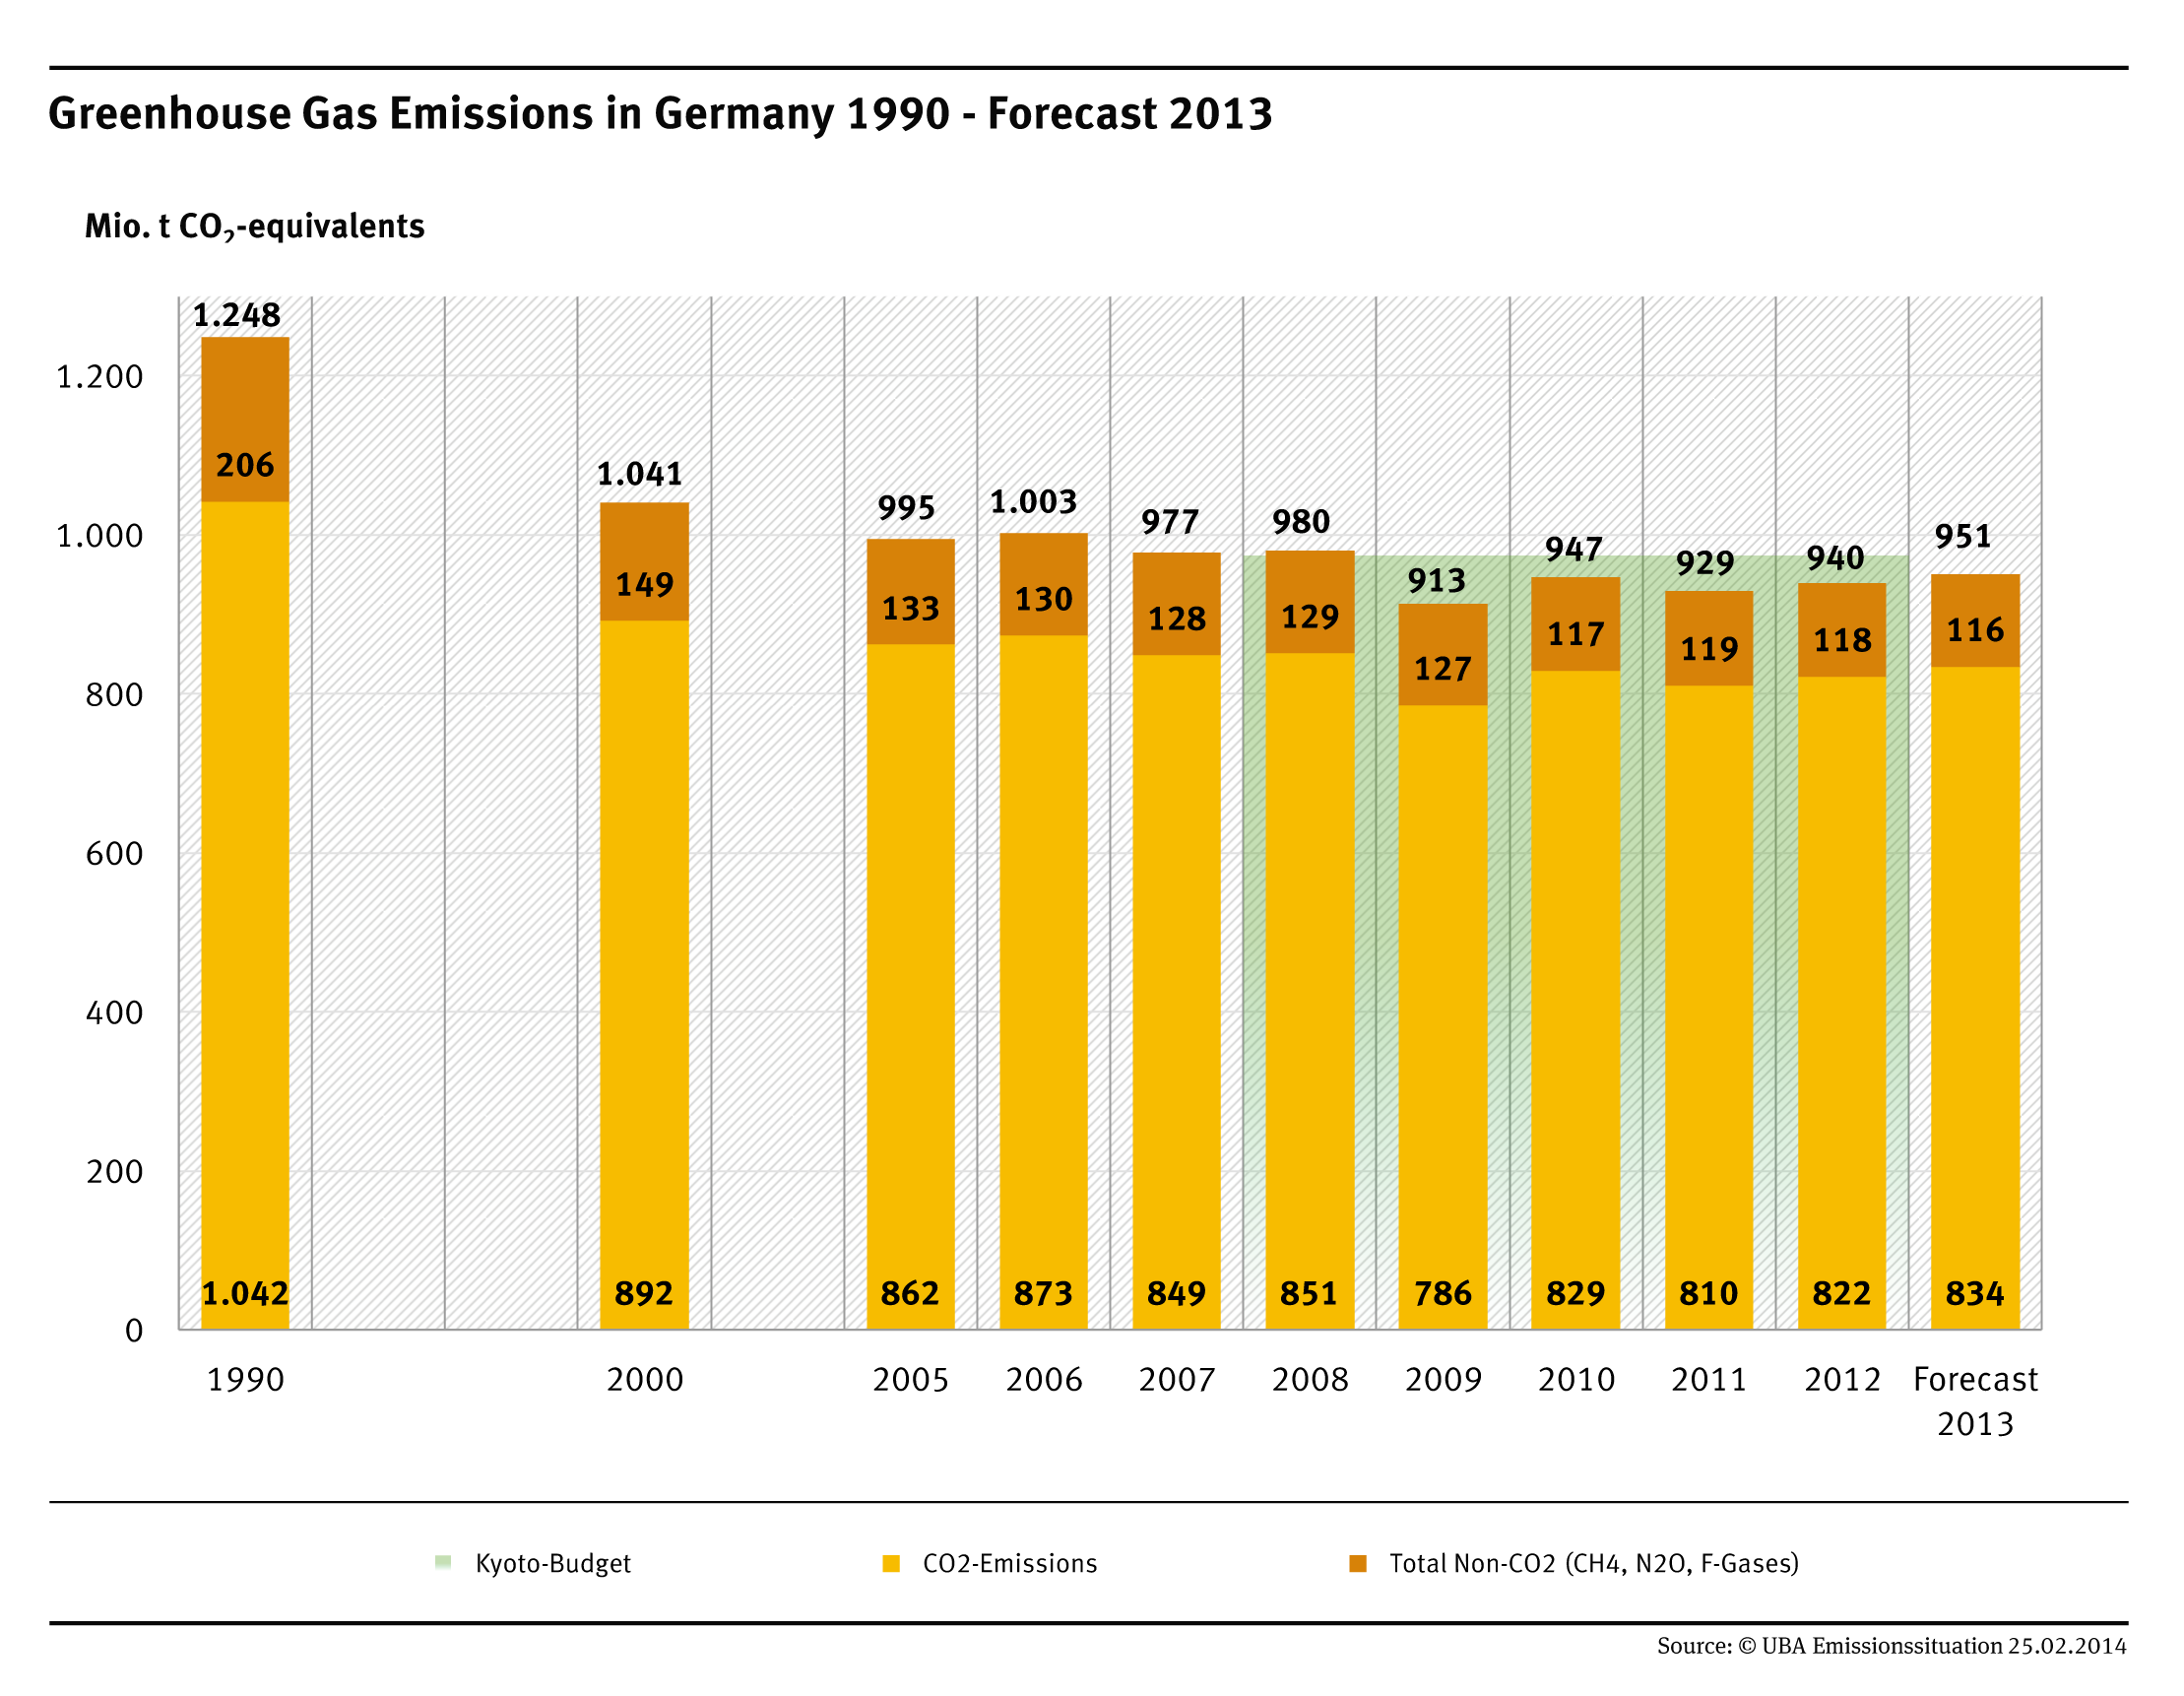 Greenhouse Gas Emissions in Germany 1990 - Forecast 2013